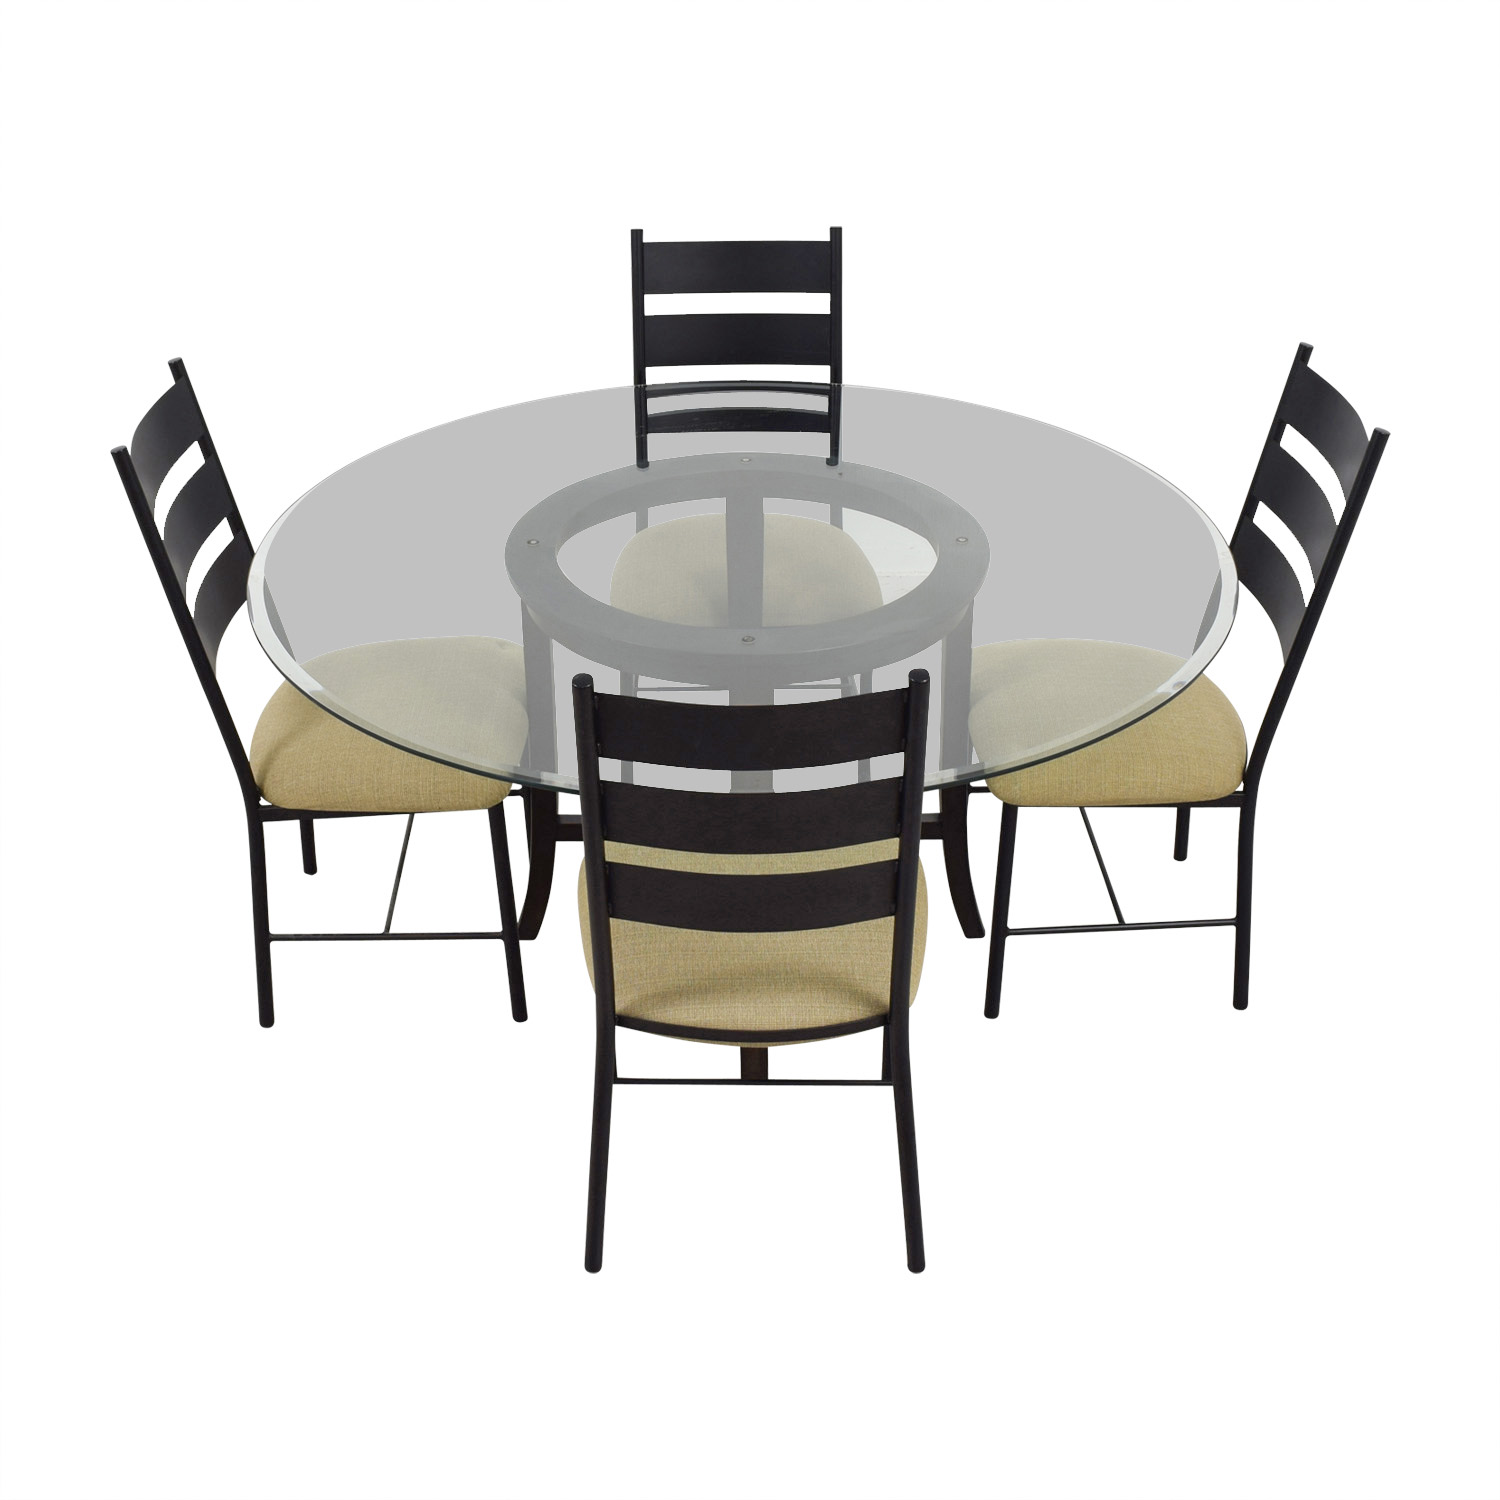 shop Crate & Barrel Crate & Barrel Halo Ebony Round Glass Top Dining Set online